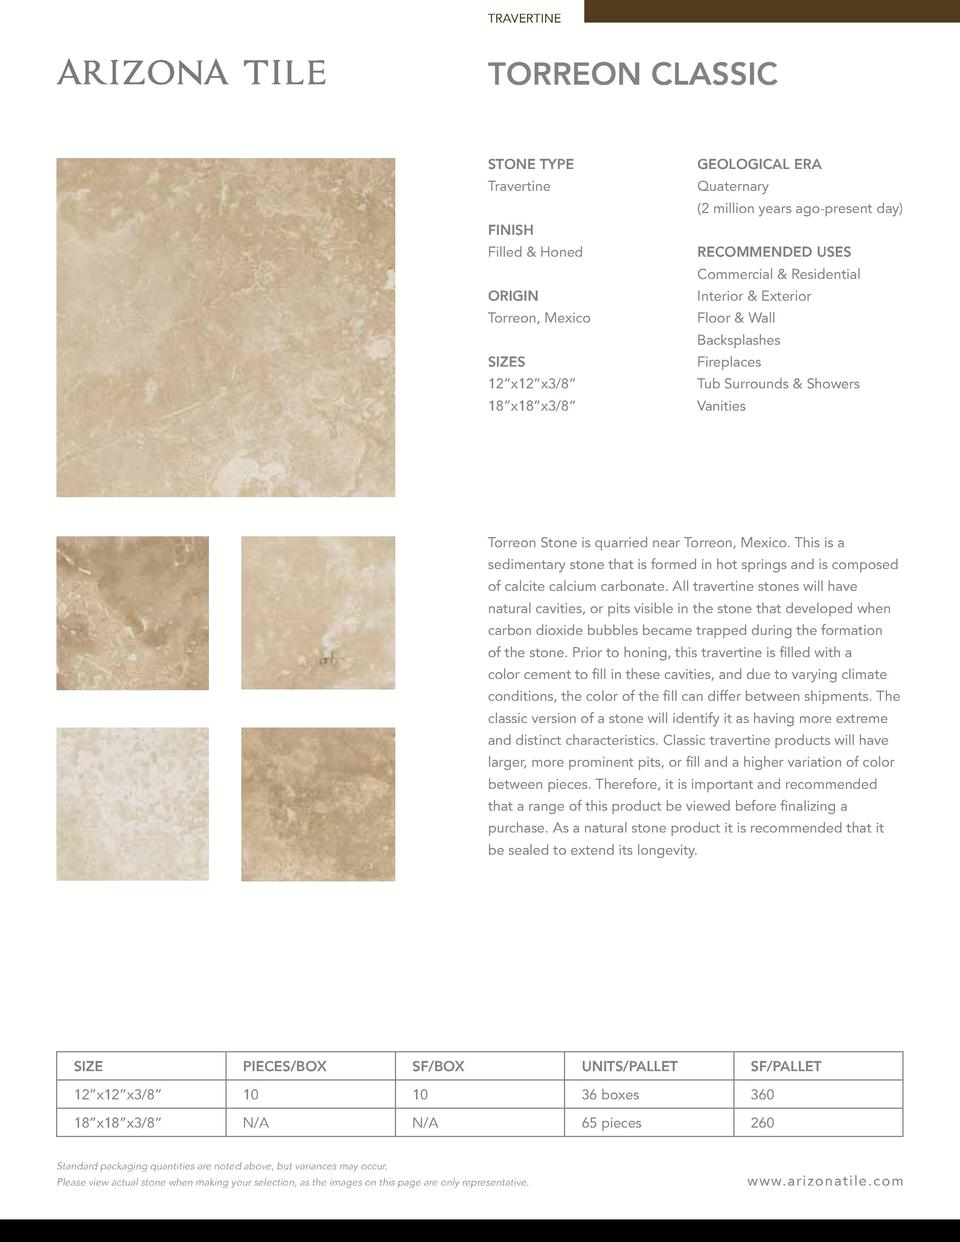 TRAVERTINE  TORREON CLASSIC STONE TYPE  GEOLOGICAL ERA  Travertine  Quaternary  2 million years ago-present day   FINISH F...